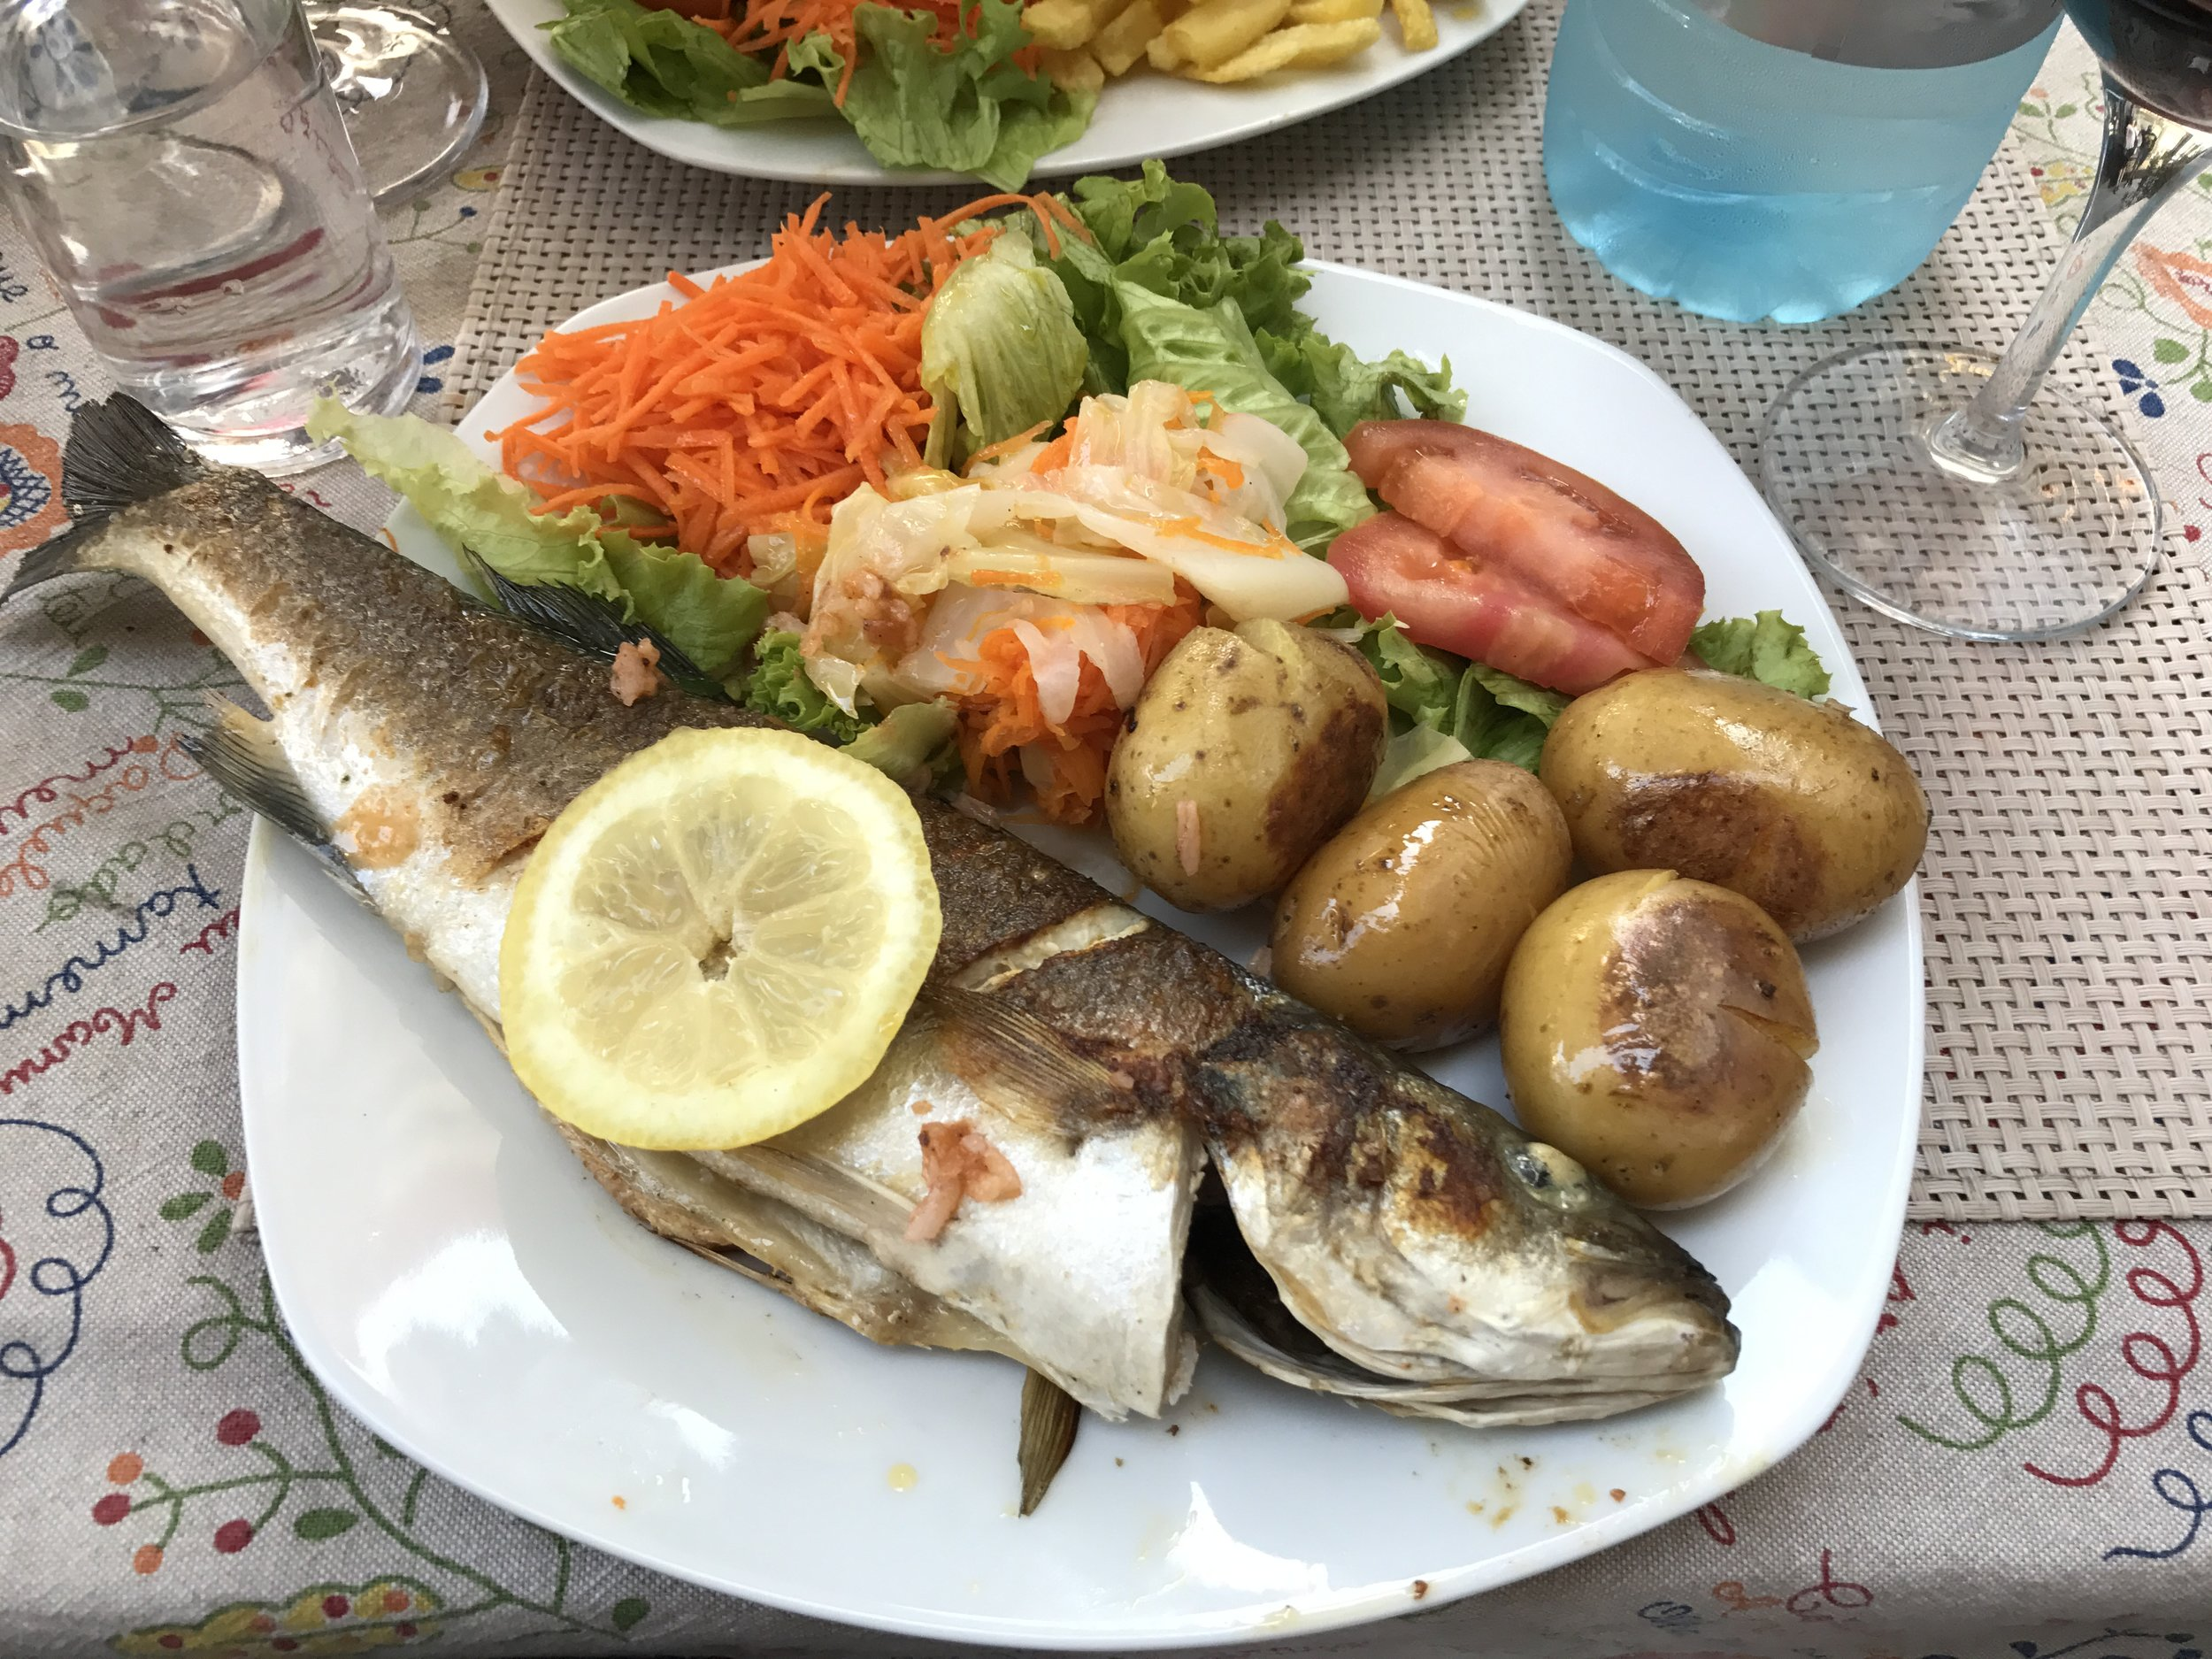 Robalo (sea bass) with a salad and potatoes